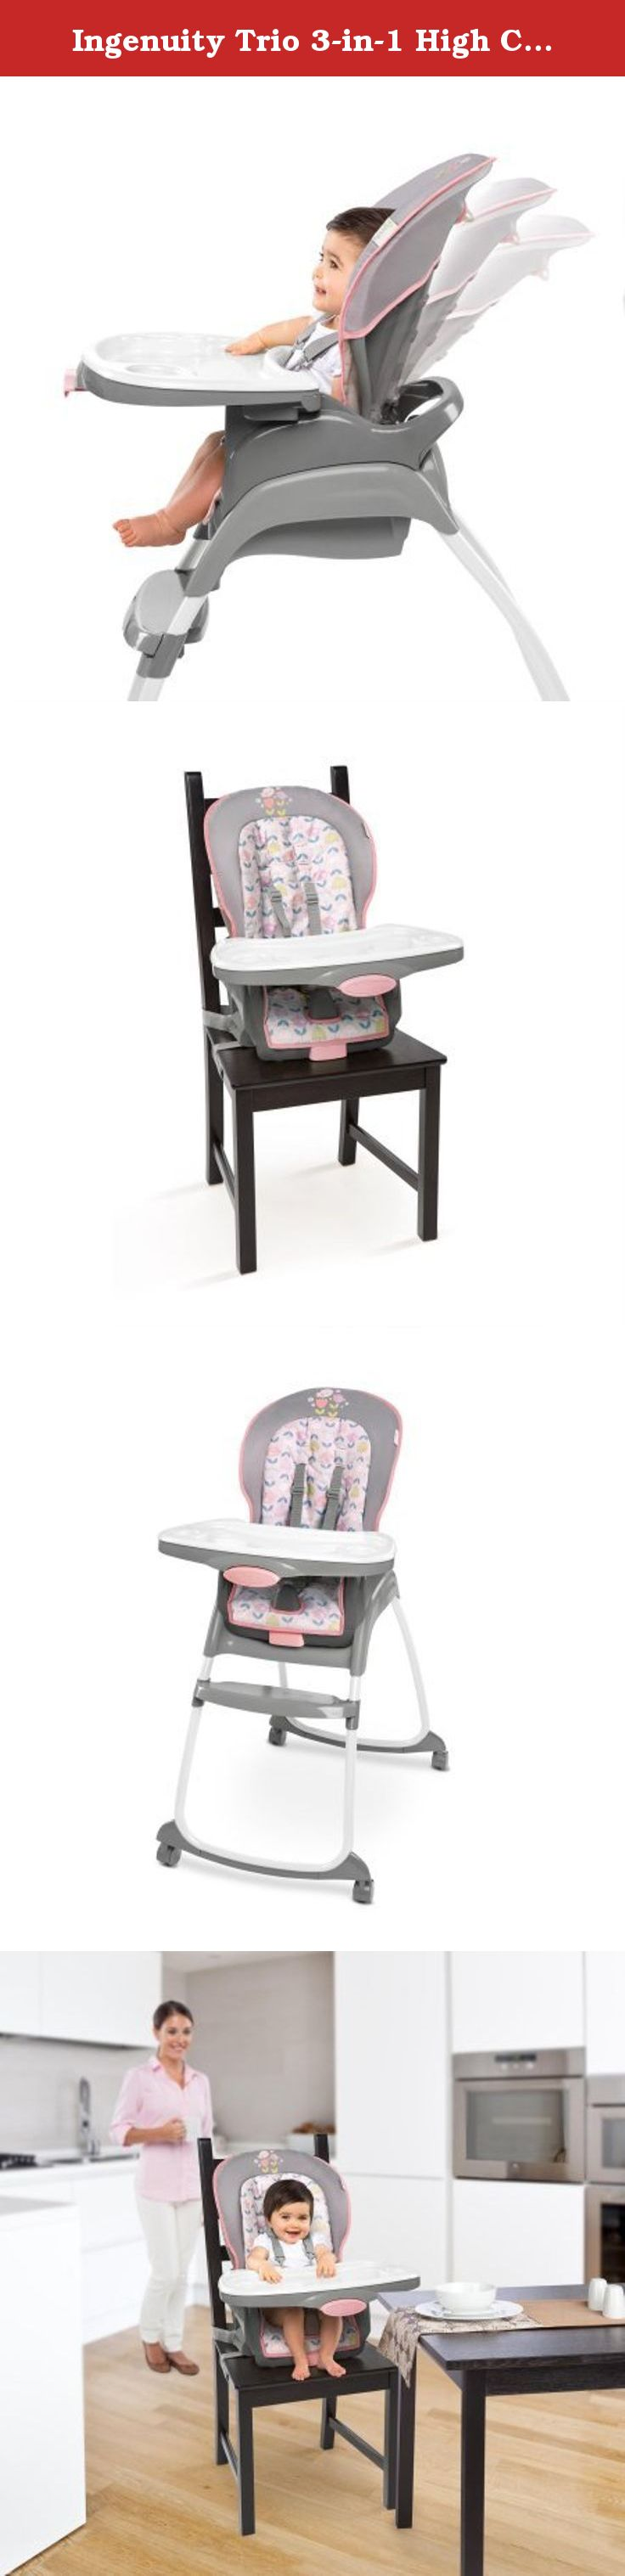 b311b222431a Ingenuity Trio 3-in-1 High Chair - Ansley. The Ingenuity Trio 3-in-1 ...